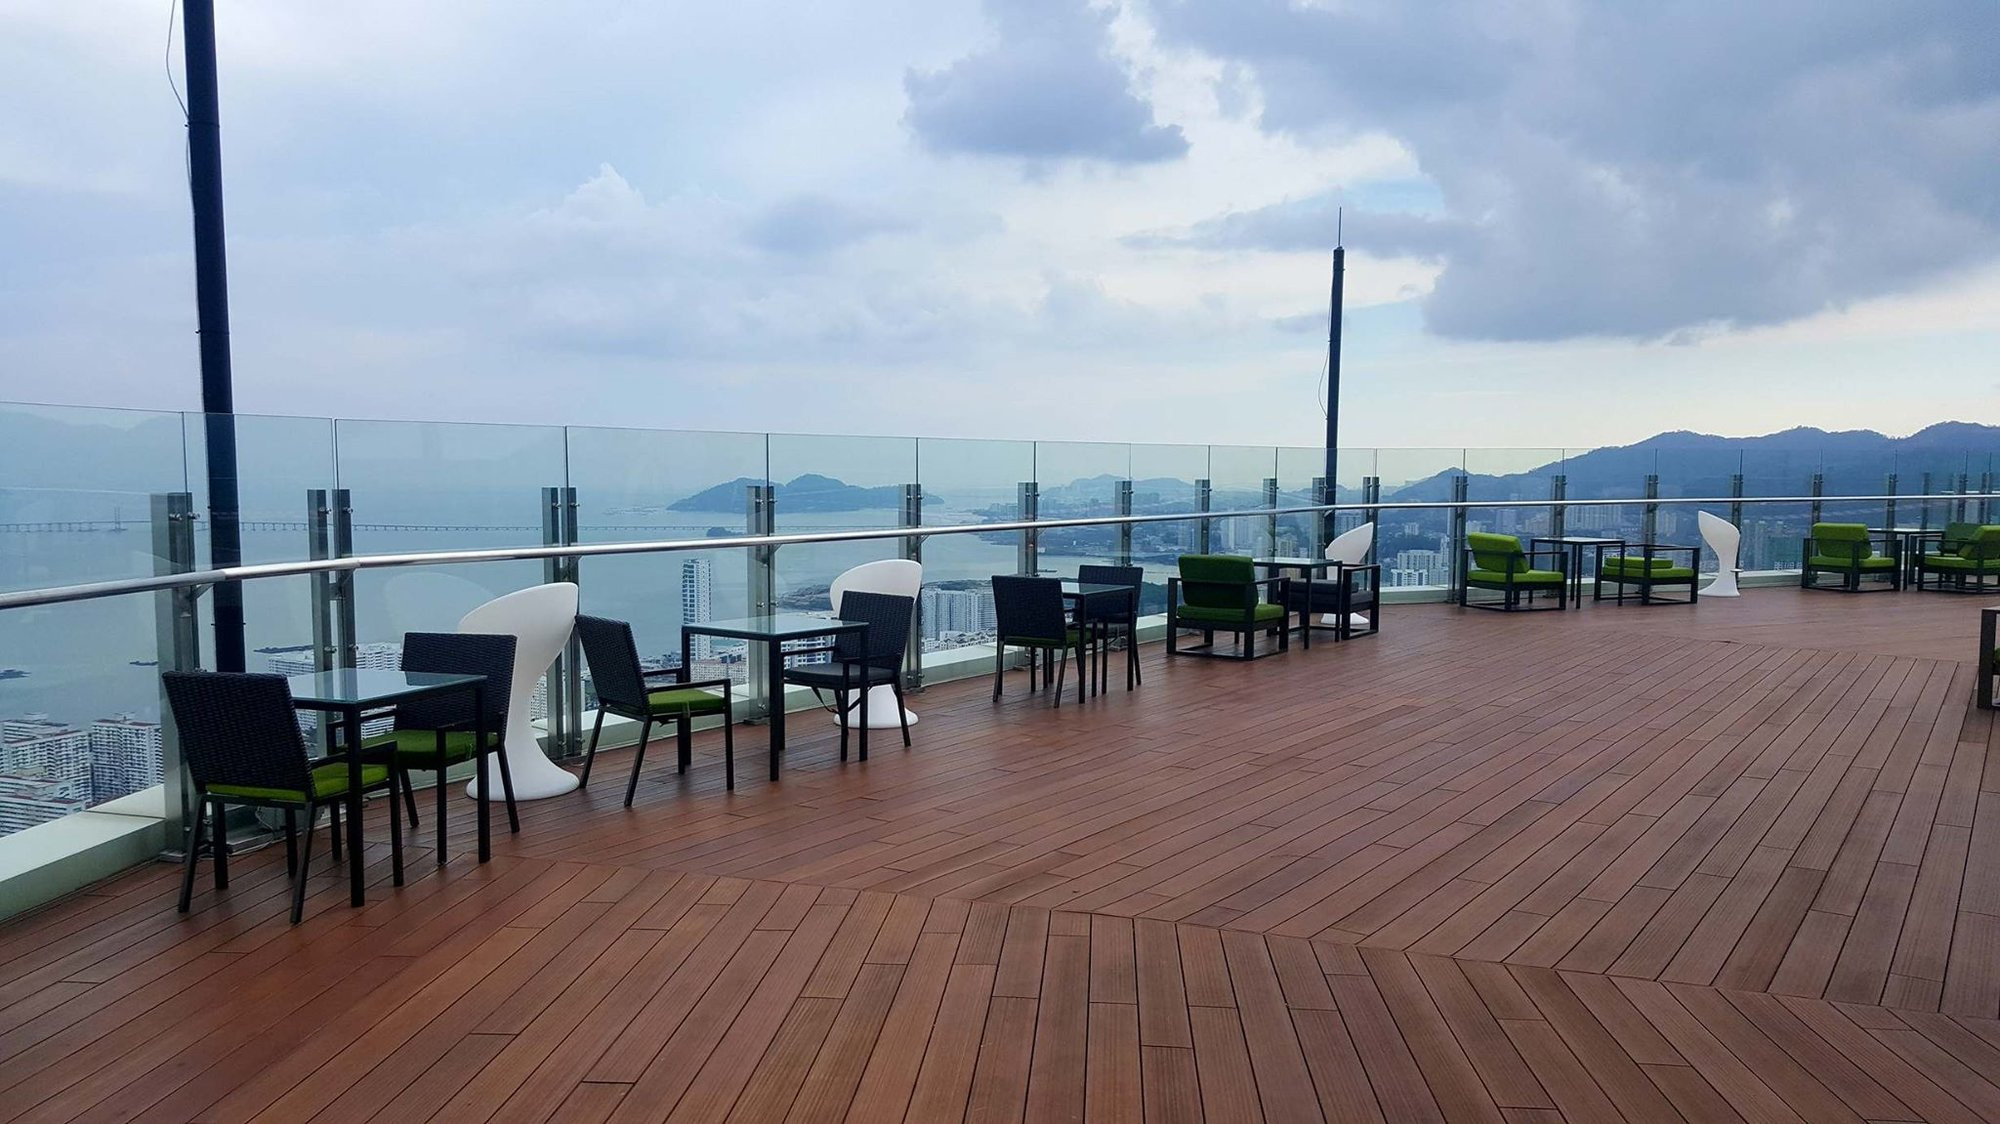 rainbow hardwood flooring reviews of discover penang the pearl of the orient flyertalk forums with the panoramic view of georgetown and surrounding area at a higher altitude